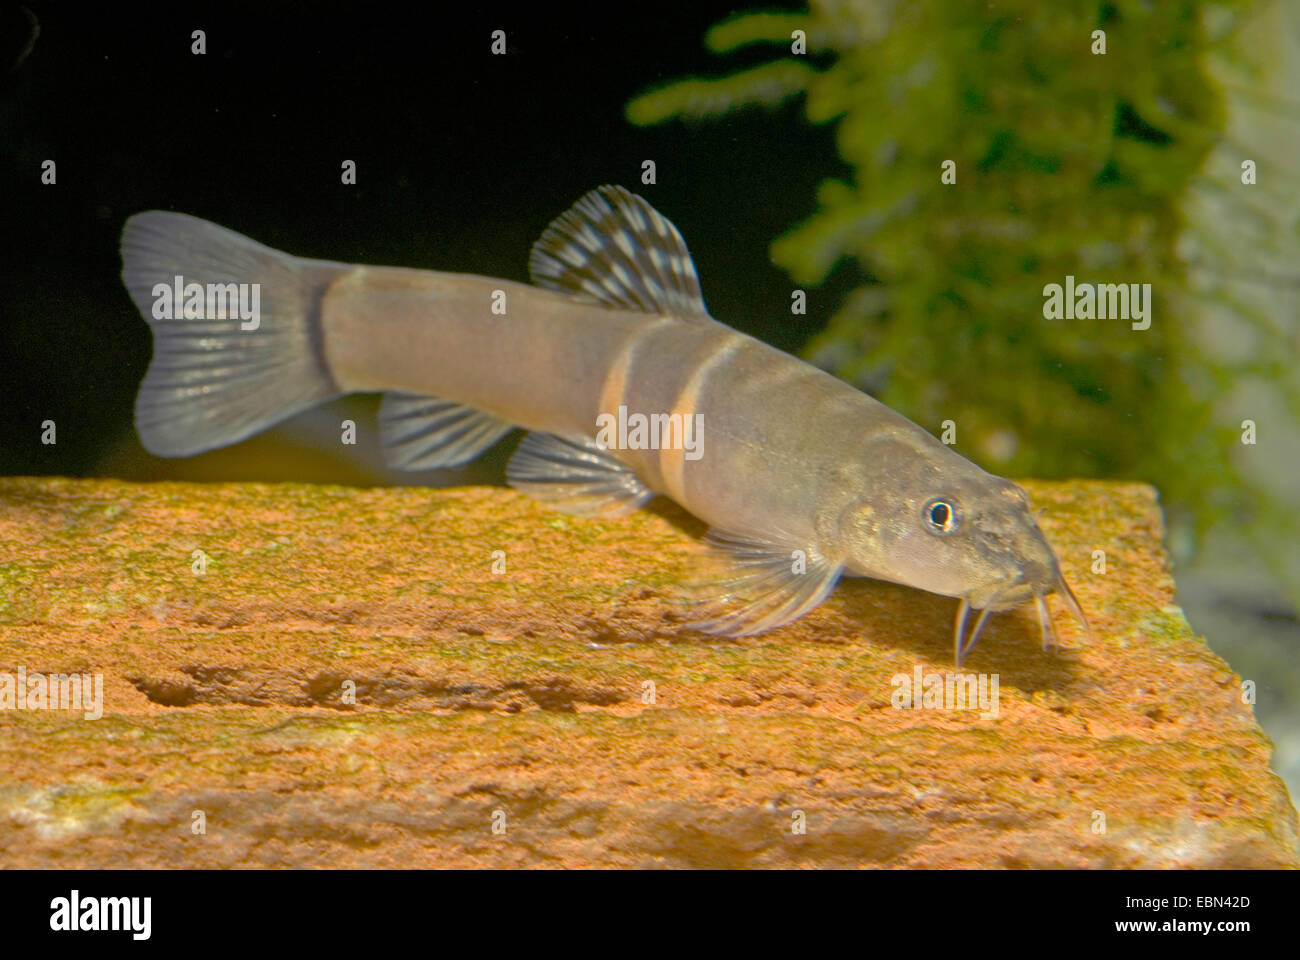 Sumu loach (Schistura balteata), on the ground - Stock Image